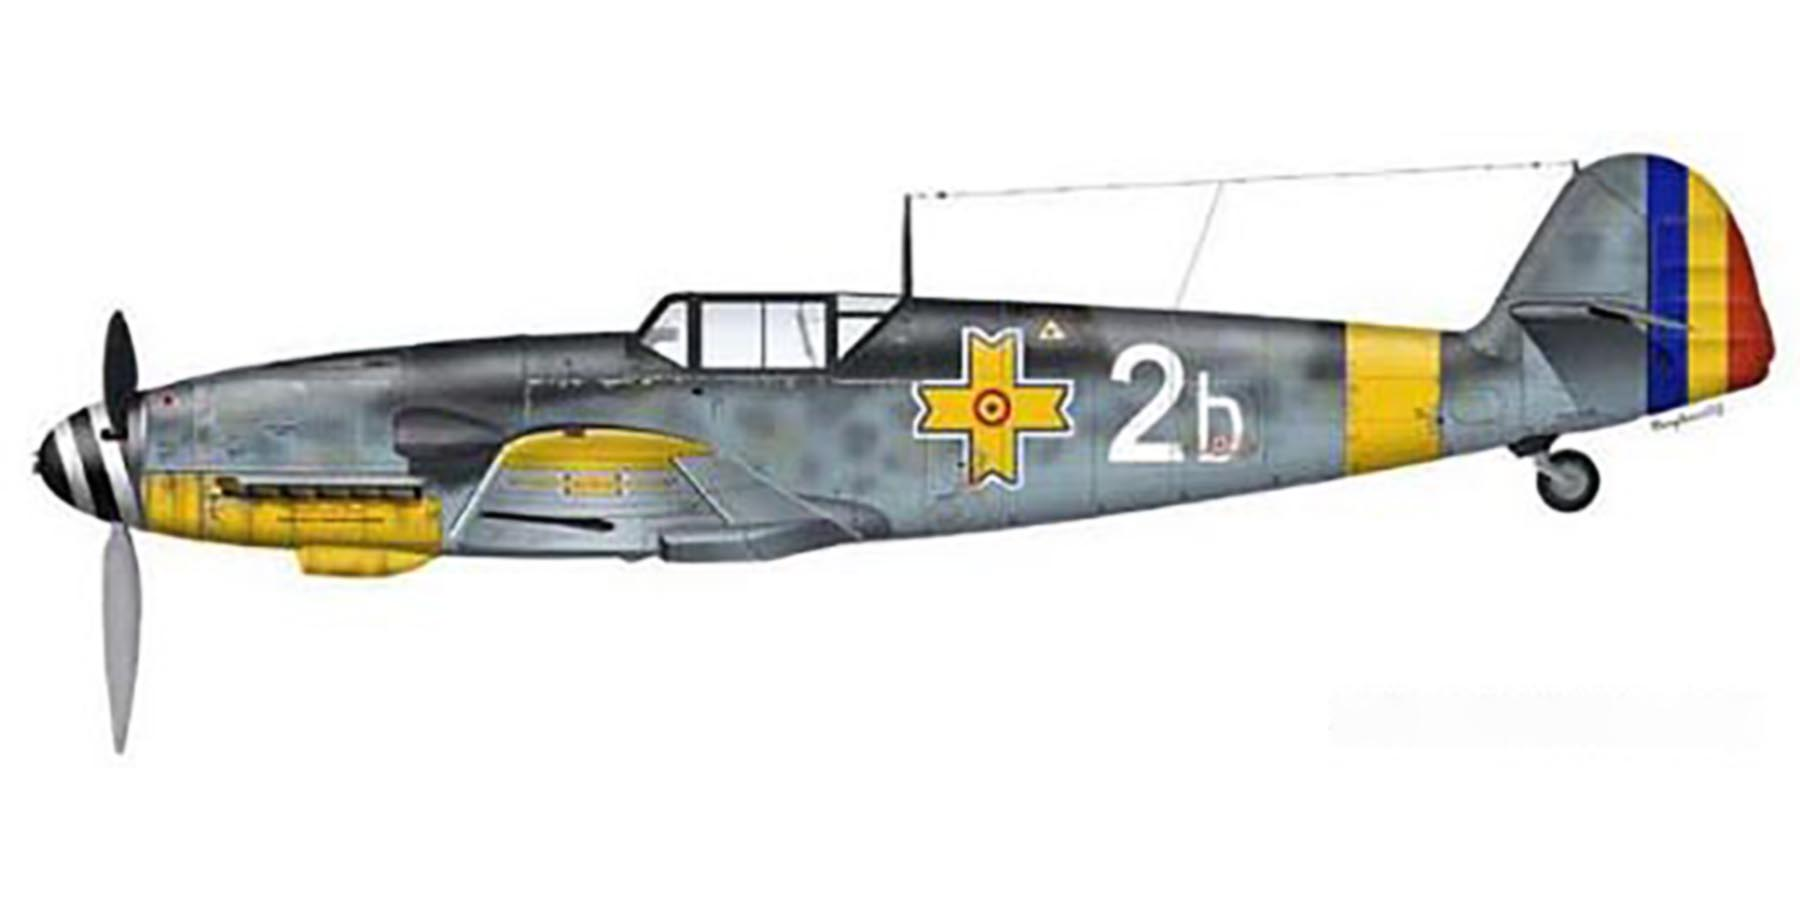 Artwork Ion Dobran flew this Bf 109G4 it was damaged 1st Oct 1943 0A